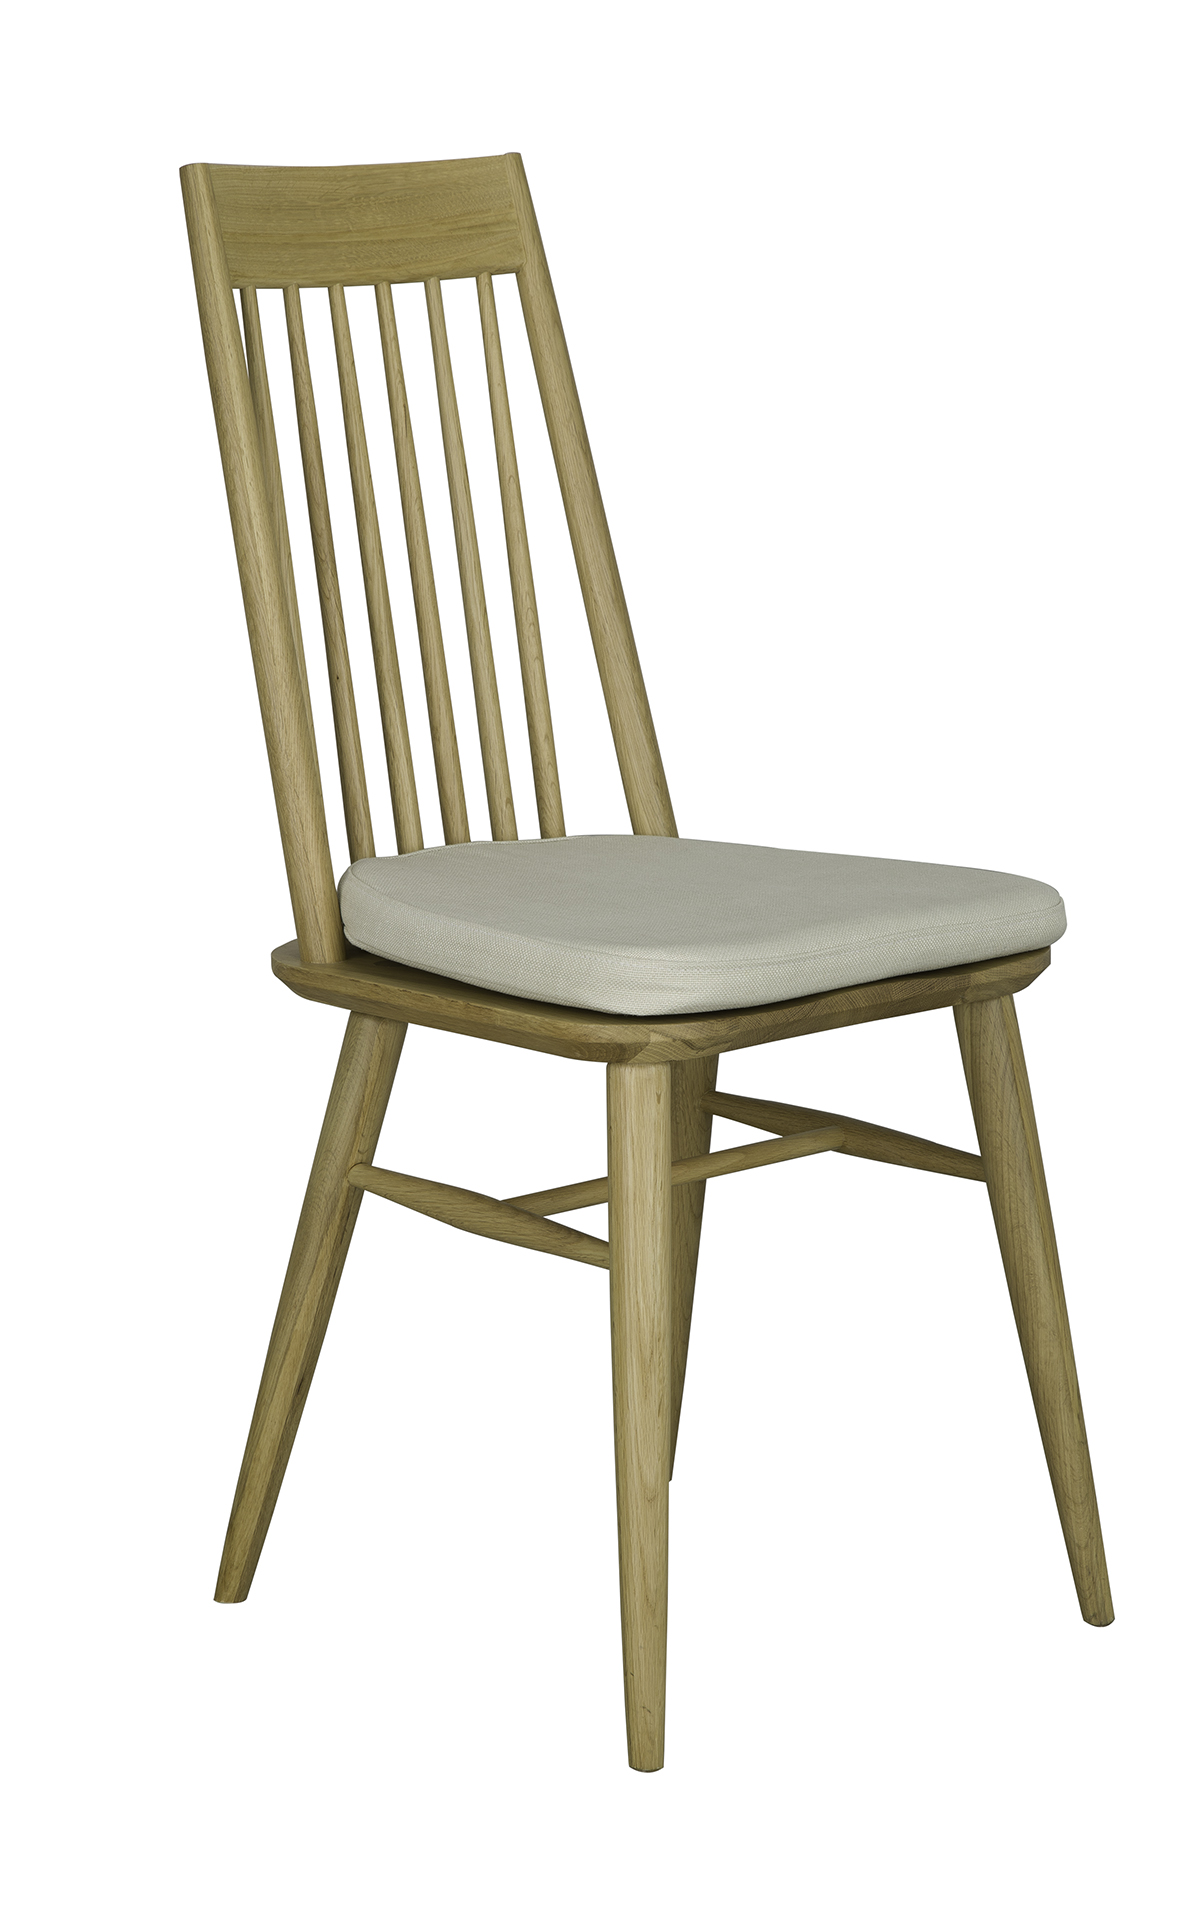 ercol chair design numbers tranquil ease lift manual capena dining choice furniture